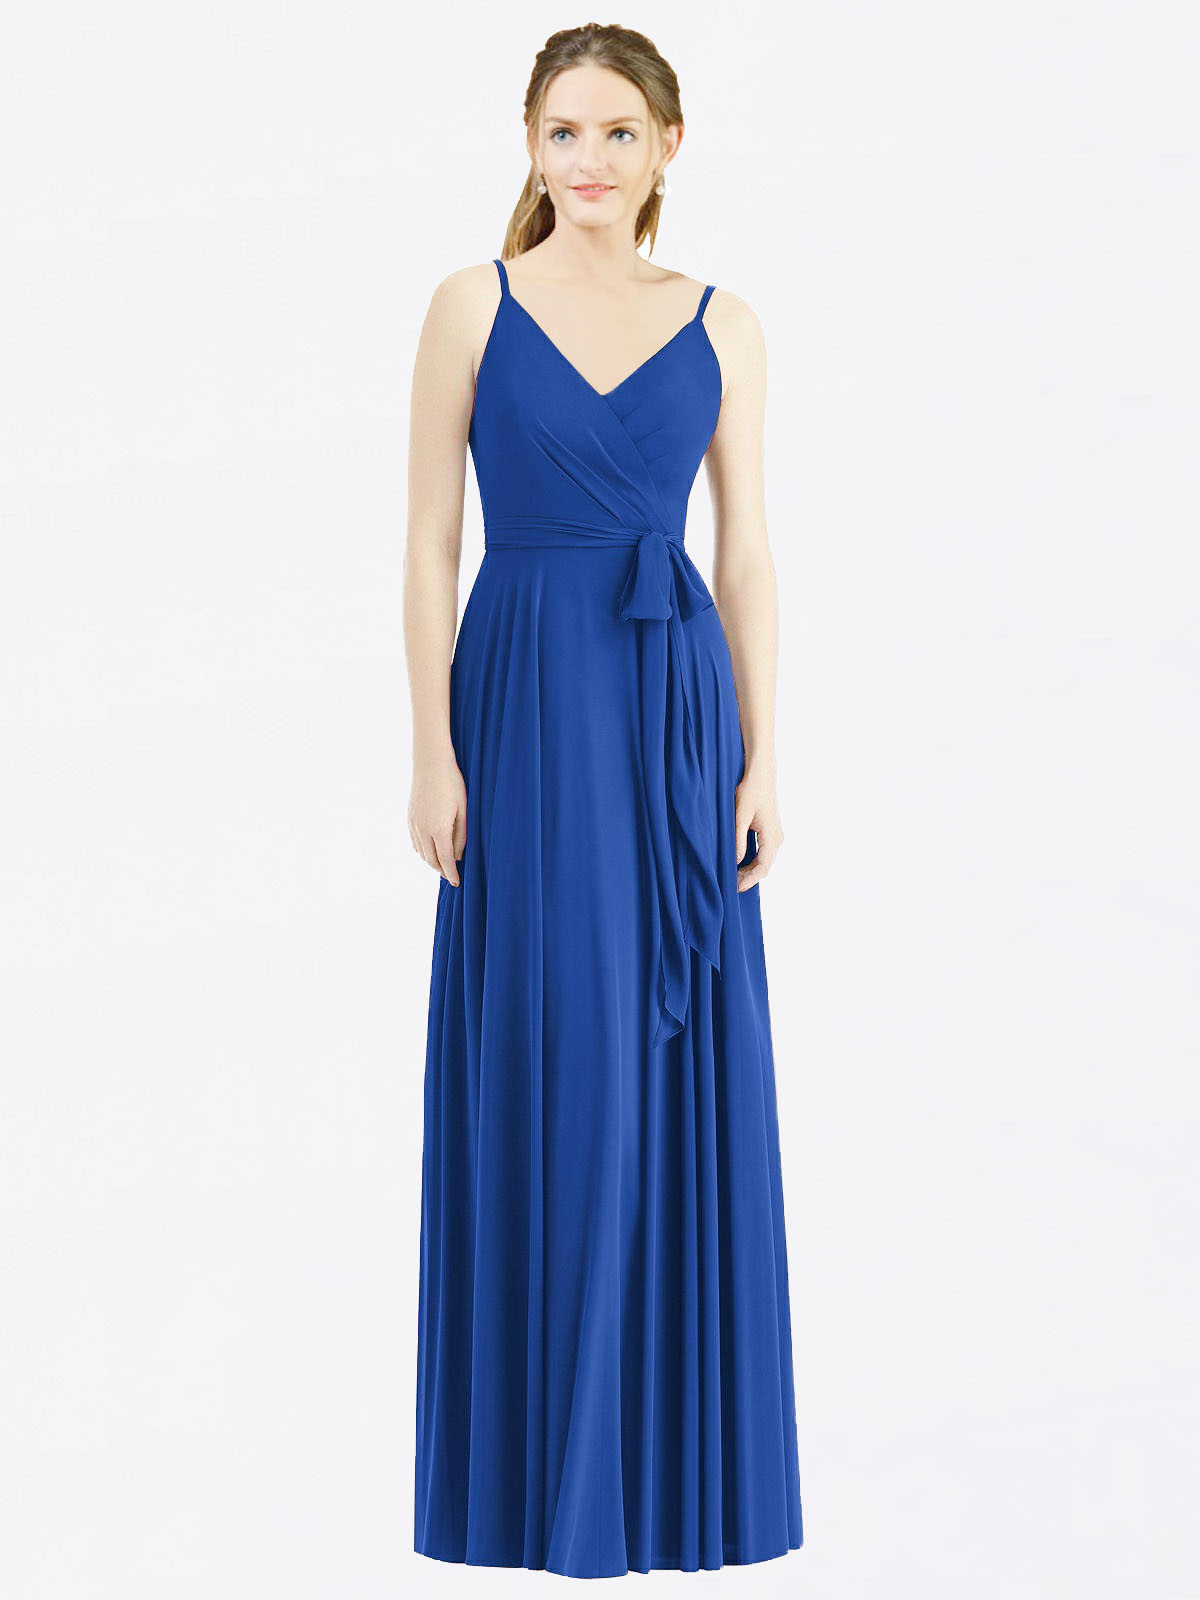 Long A-Line Spaghetti Straps, V-Neck Sleeveless Royal Blue Chiffon Bridesmaid Dress Madilyn